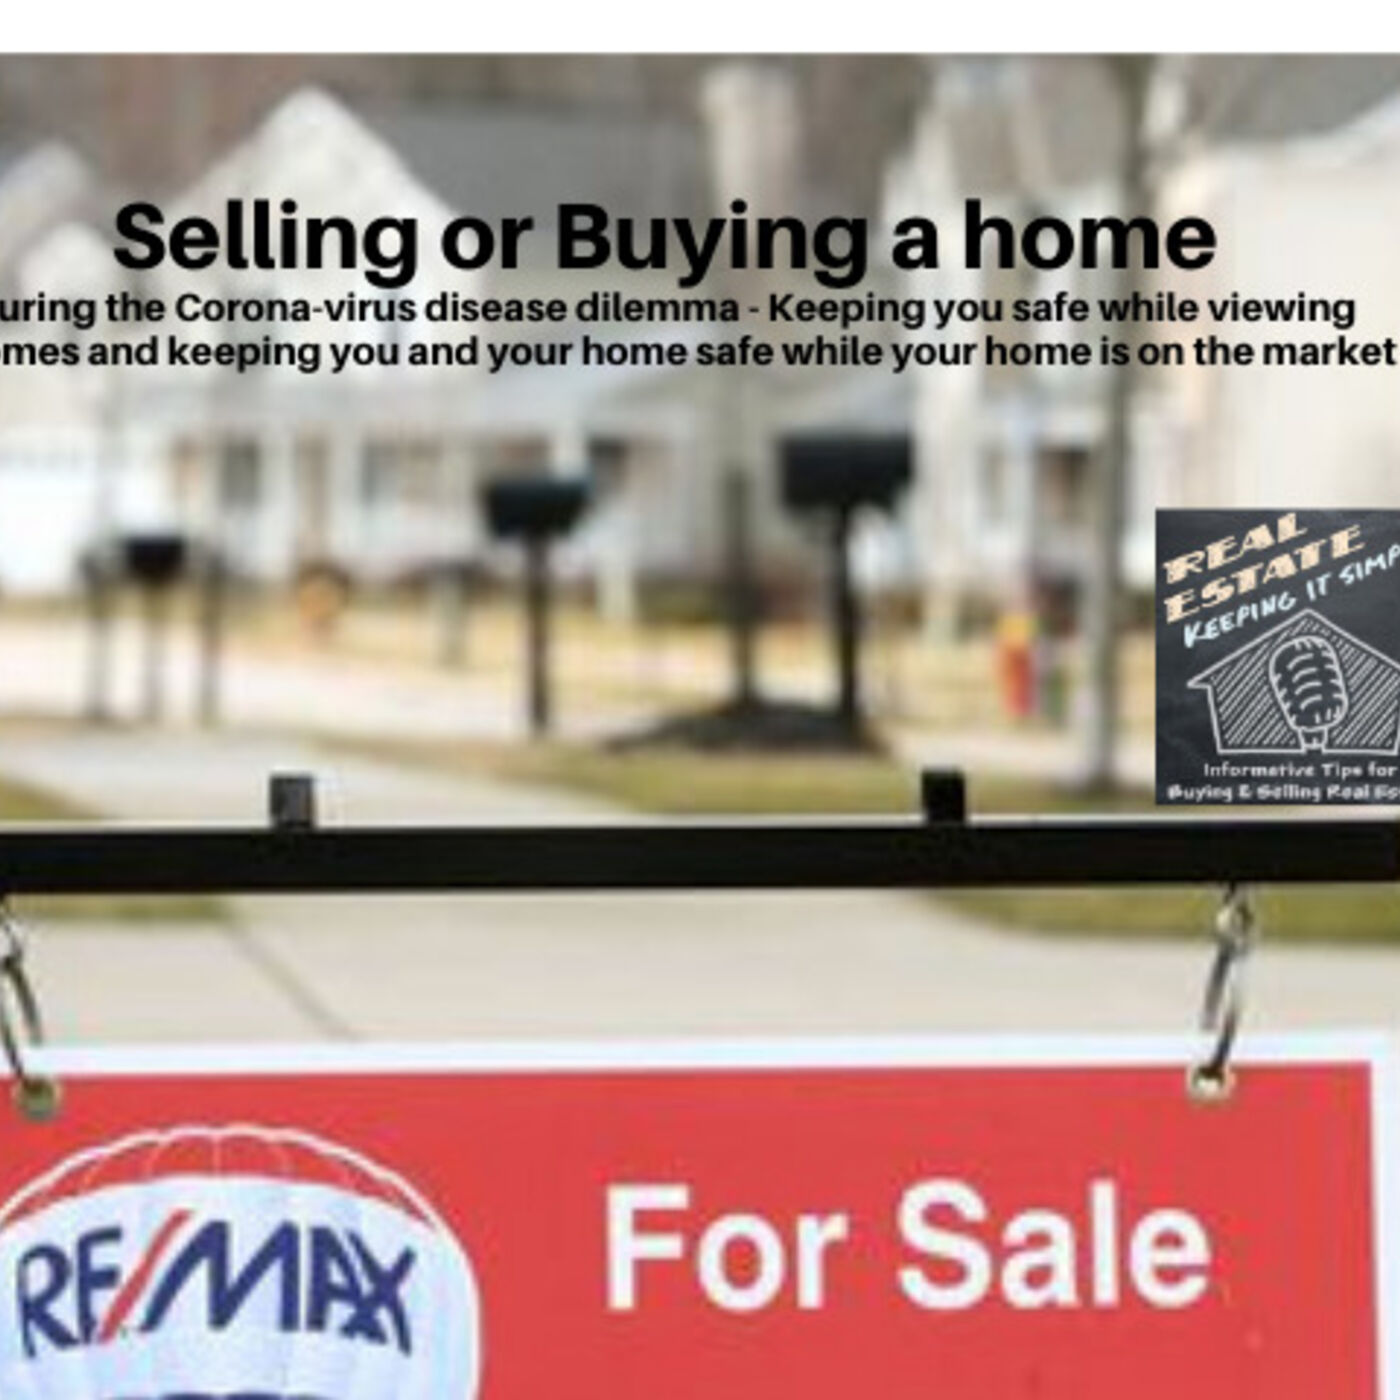 Thoughts on looking at homes and selling a home during the Coronavirus issue